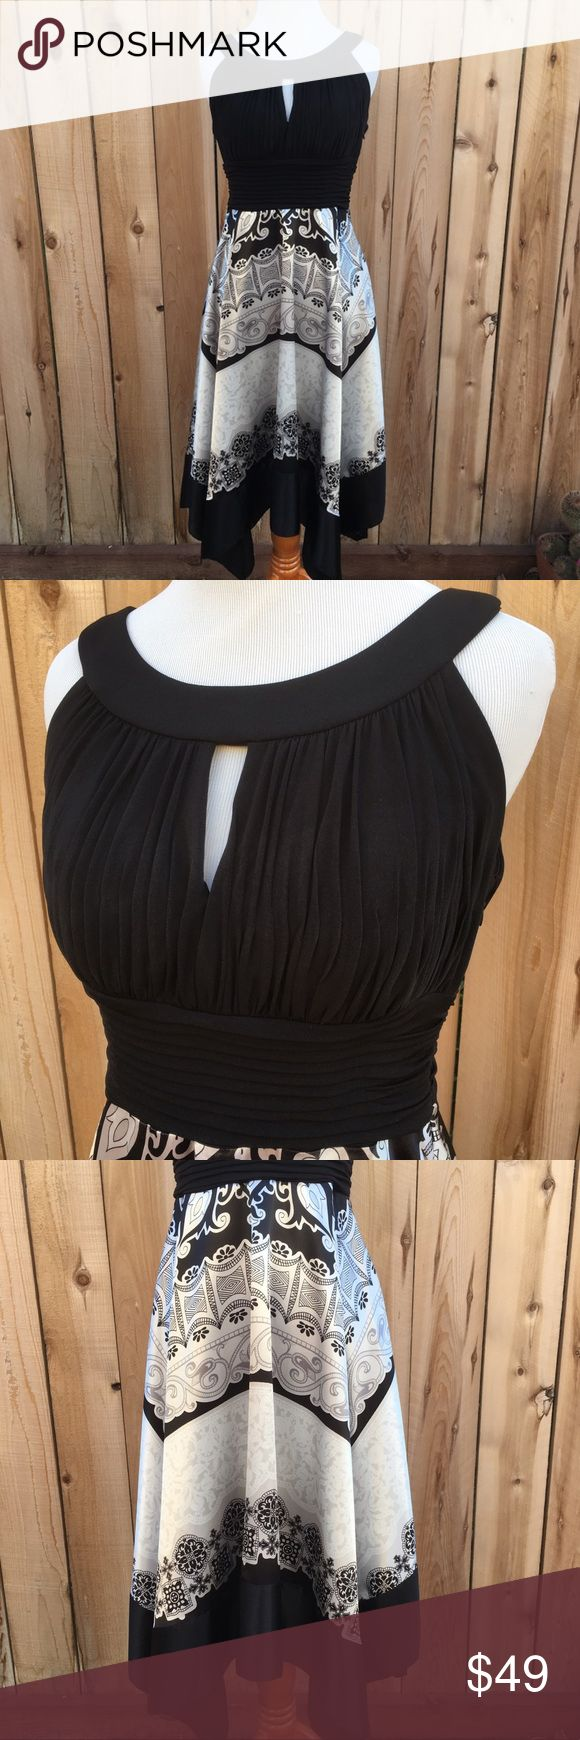 """🆕 Black & White Scarf Dress Rounded neck with a scarf style skirt. Worn once to a wedding. Colors are black, white & gray. Skirt of dress is 100% Polyester, top solid black part of dress is a stretchy 95% Polyester & 5% Spandex. Side zipper with clasp. Also two buttons in back at neckline. Top is lined with bra pads so can go braless. Measurements are 17"""" pit to pit, 12.5"""" relaxed to 16"""" stretched waist and 36"""" long in center to 46"""" longest point to bottom of dress. In excellent like new…"""